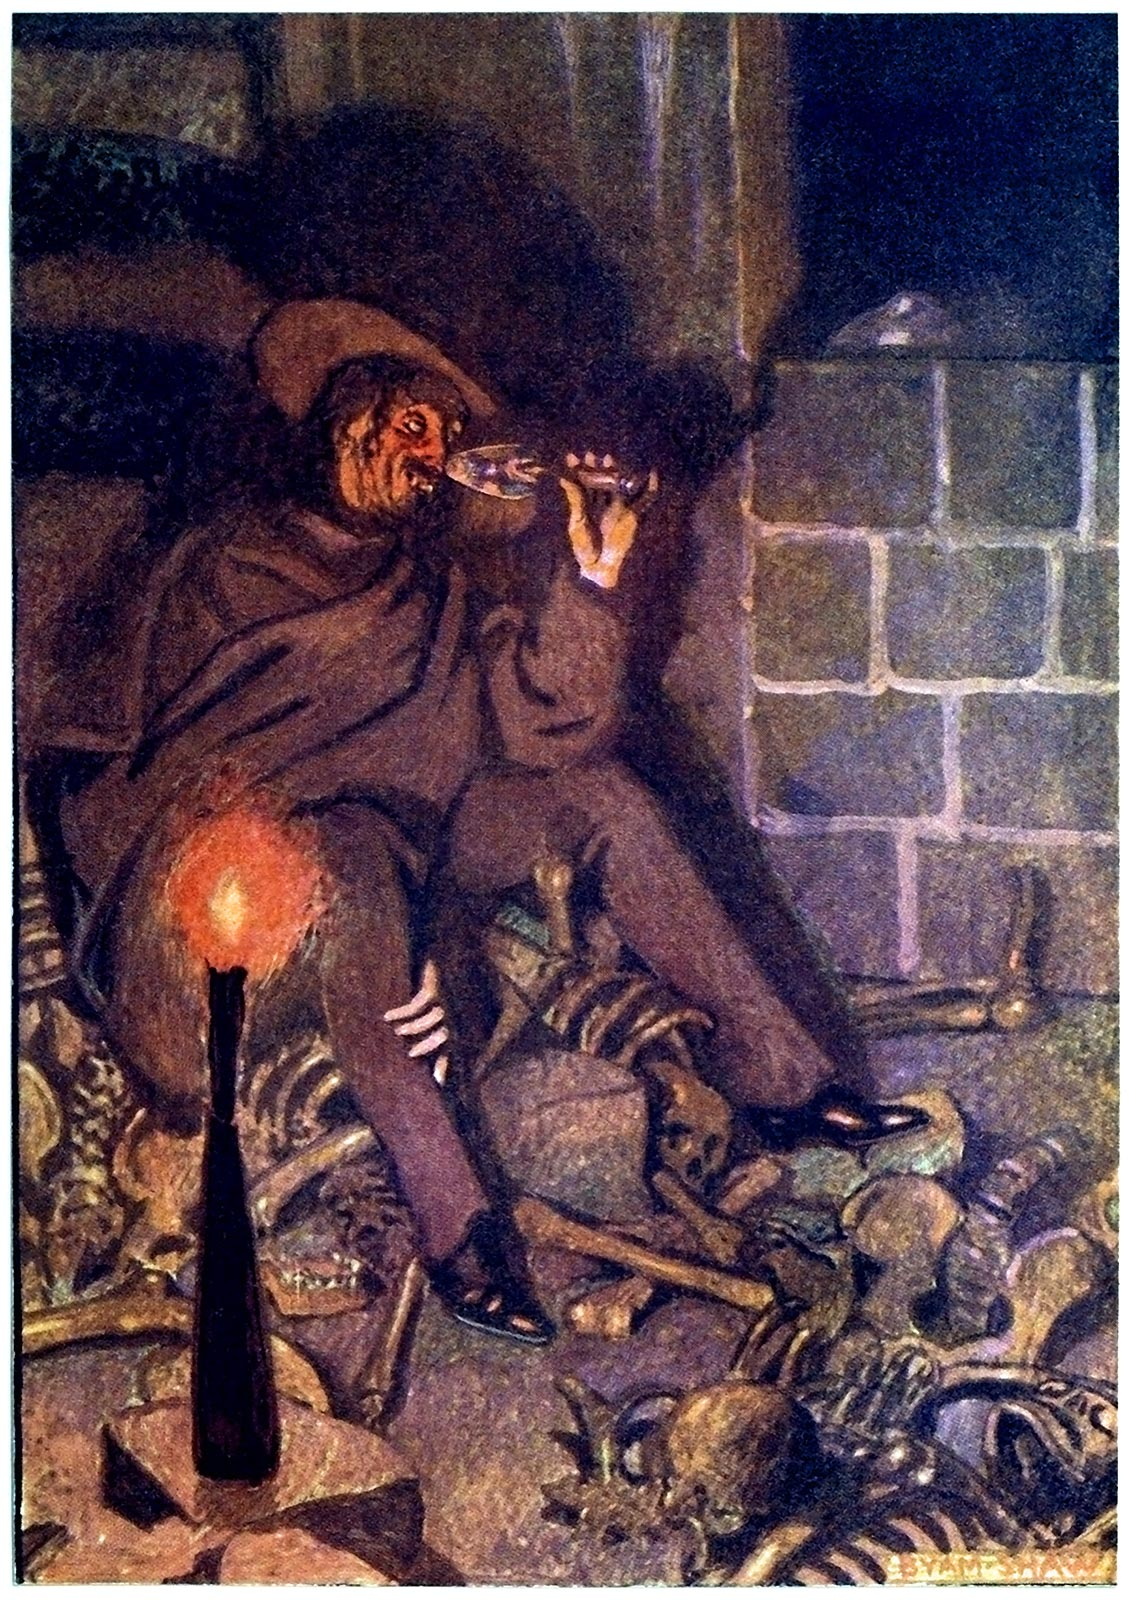 a comparison of edgar allan poes stories the fall of the house of usher and the cask of amontillado Cask of amontillado by edgar allan poe  edgar allan poes life impact  though both the stories the fall of the house of usher and the telltale heart by.